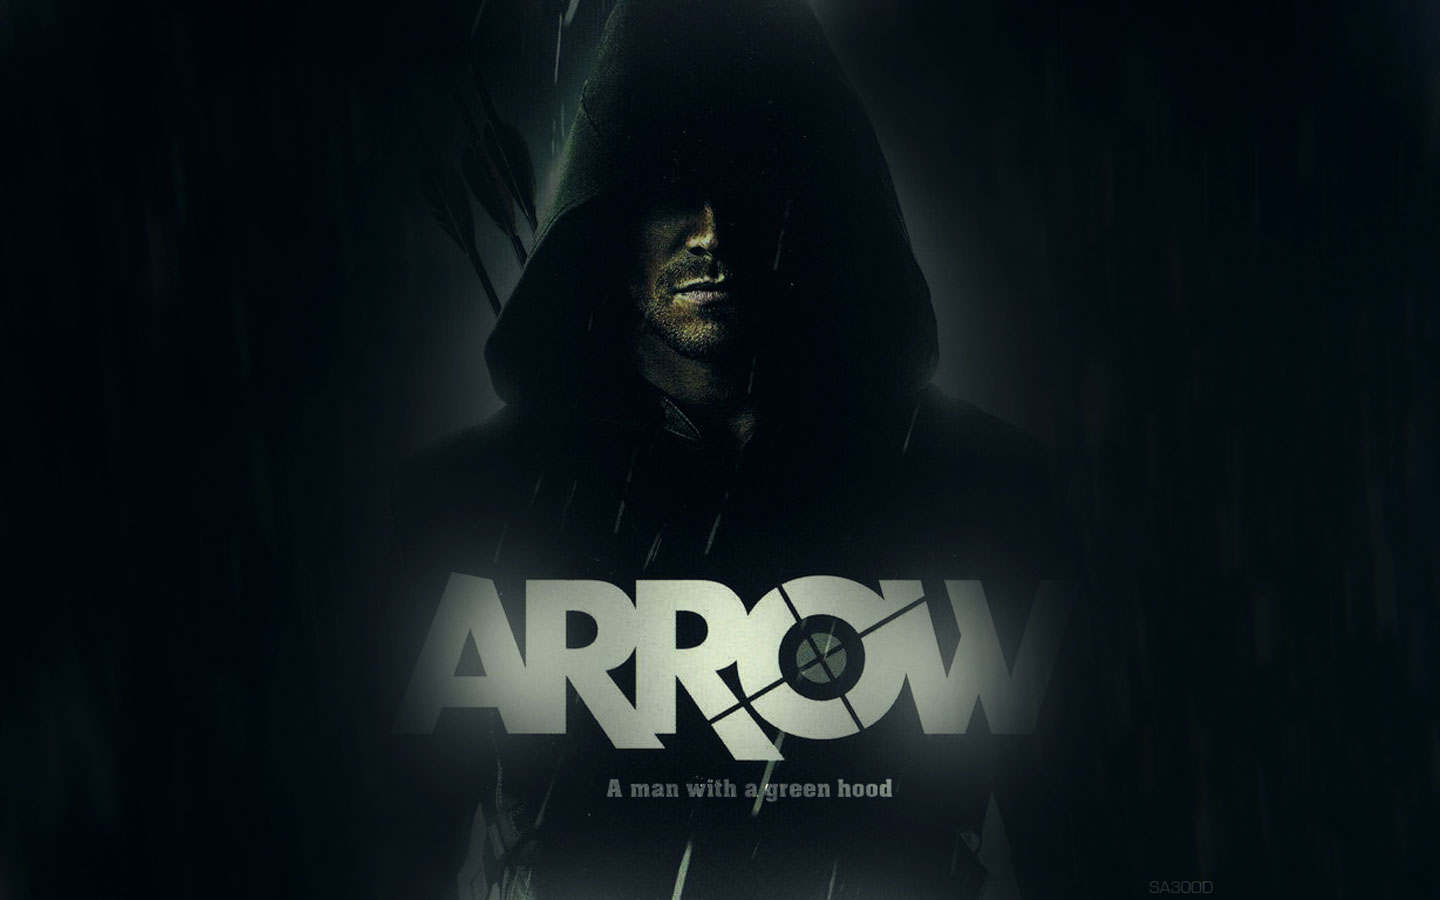 Collection of Green Arrow Wallpaper on HDWallpapers 1440x900